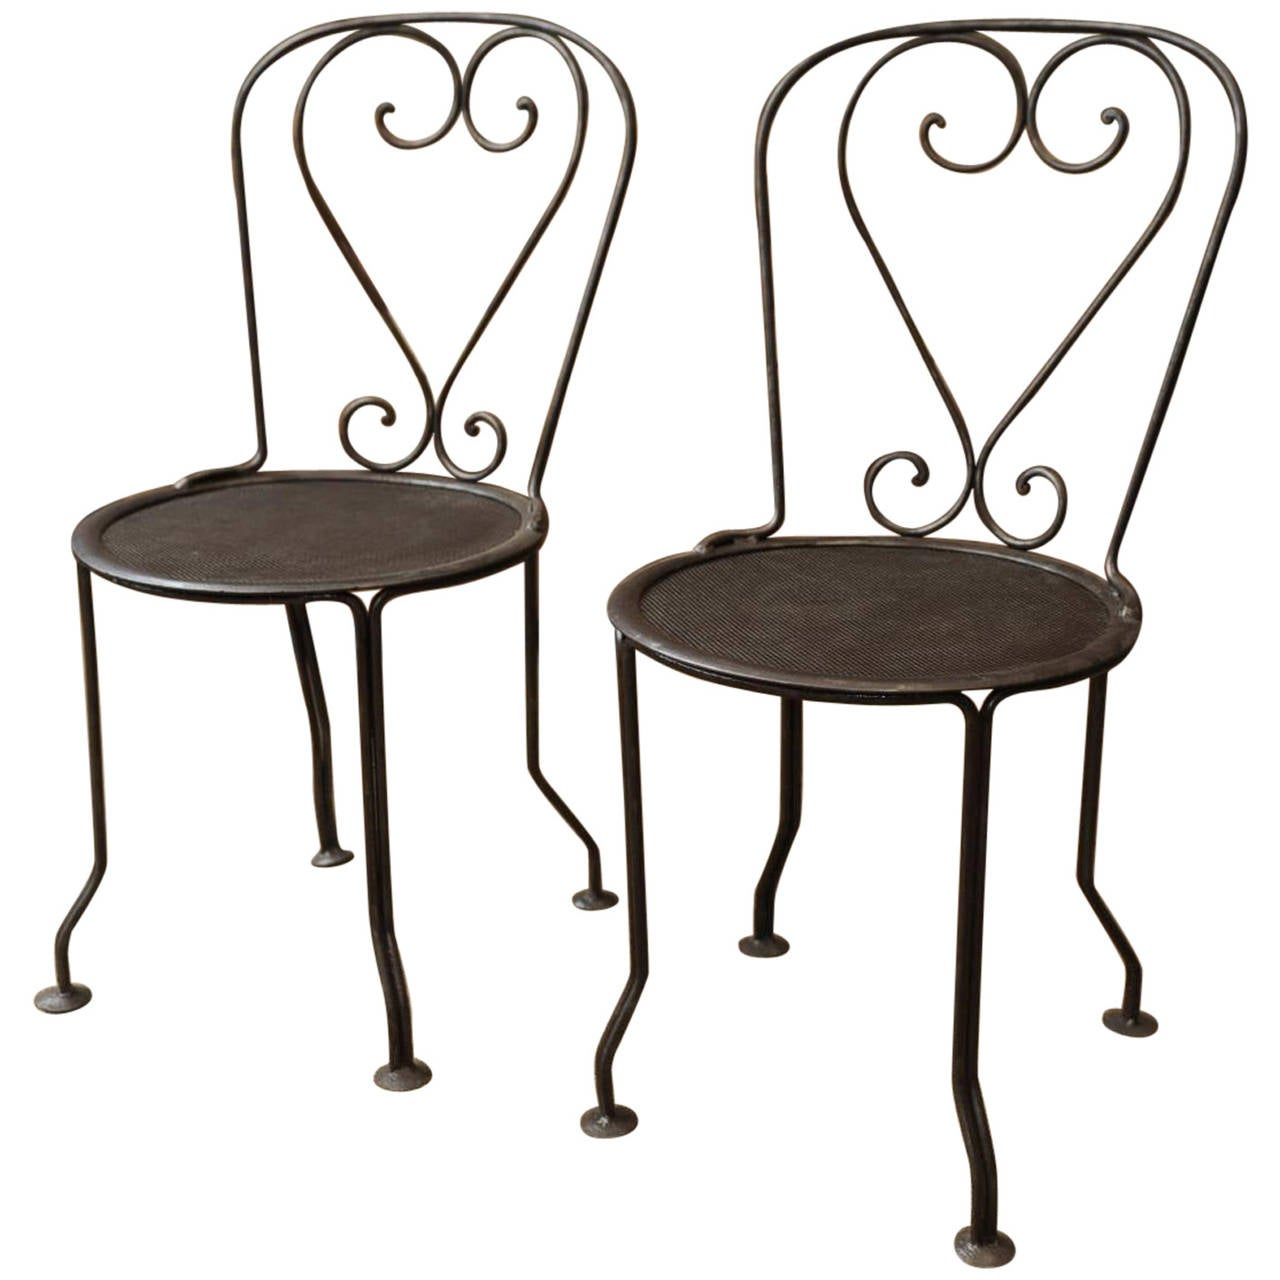 Paire of 1920s iron french garden chairs at 1stdibs French metal garden furniture